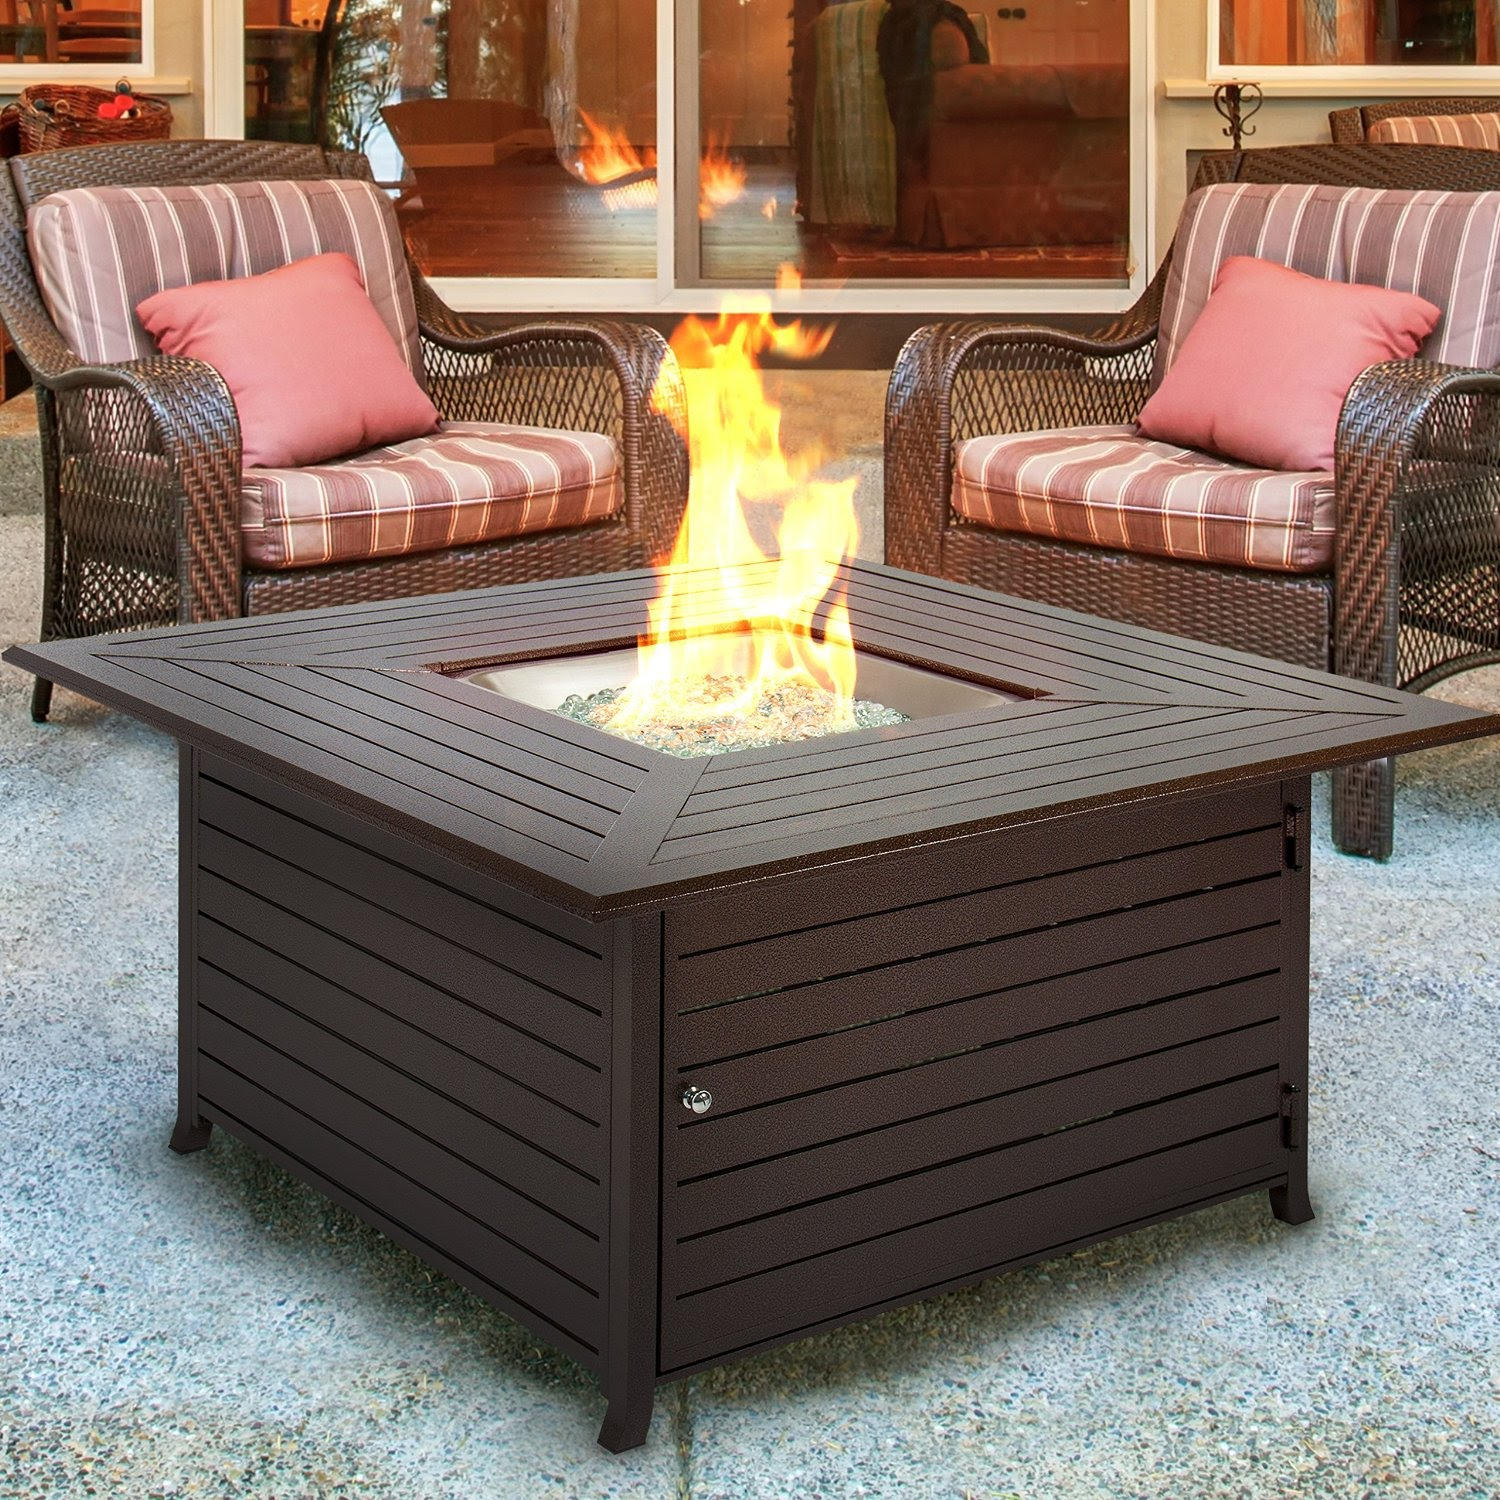 Top Ten Best Gas Fire Pit Tables